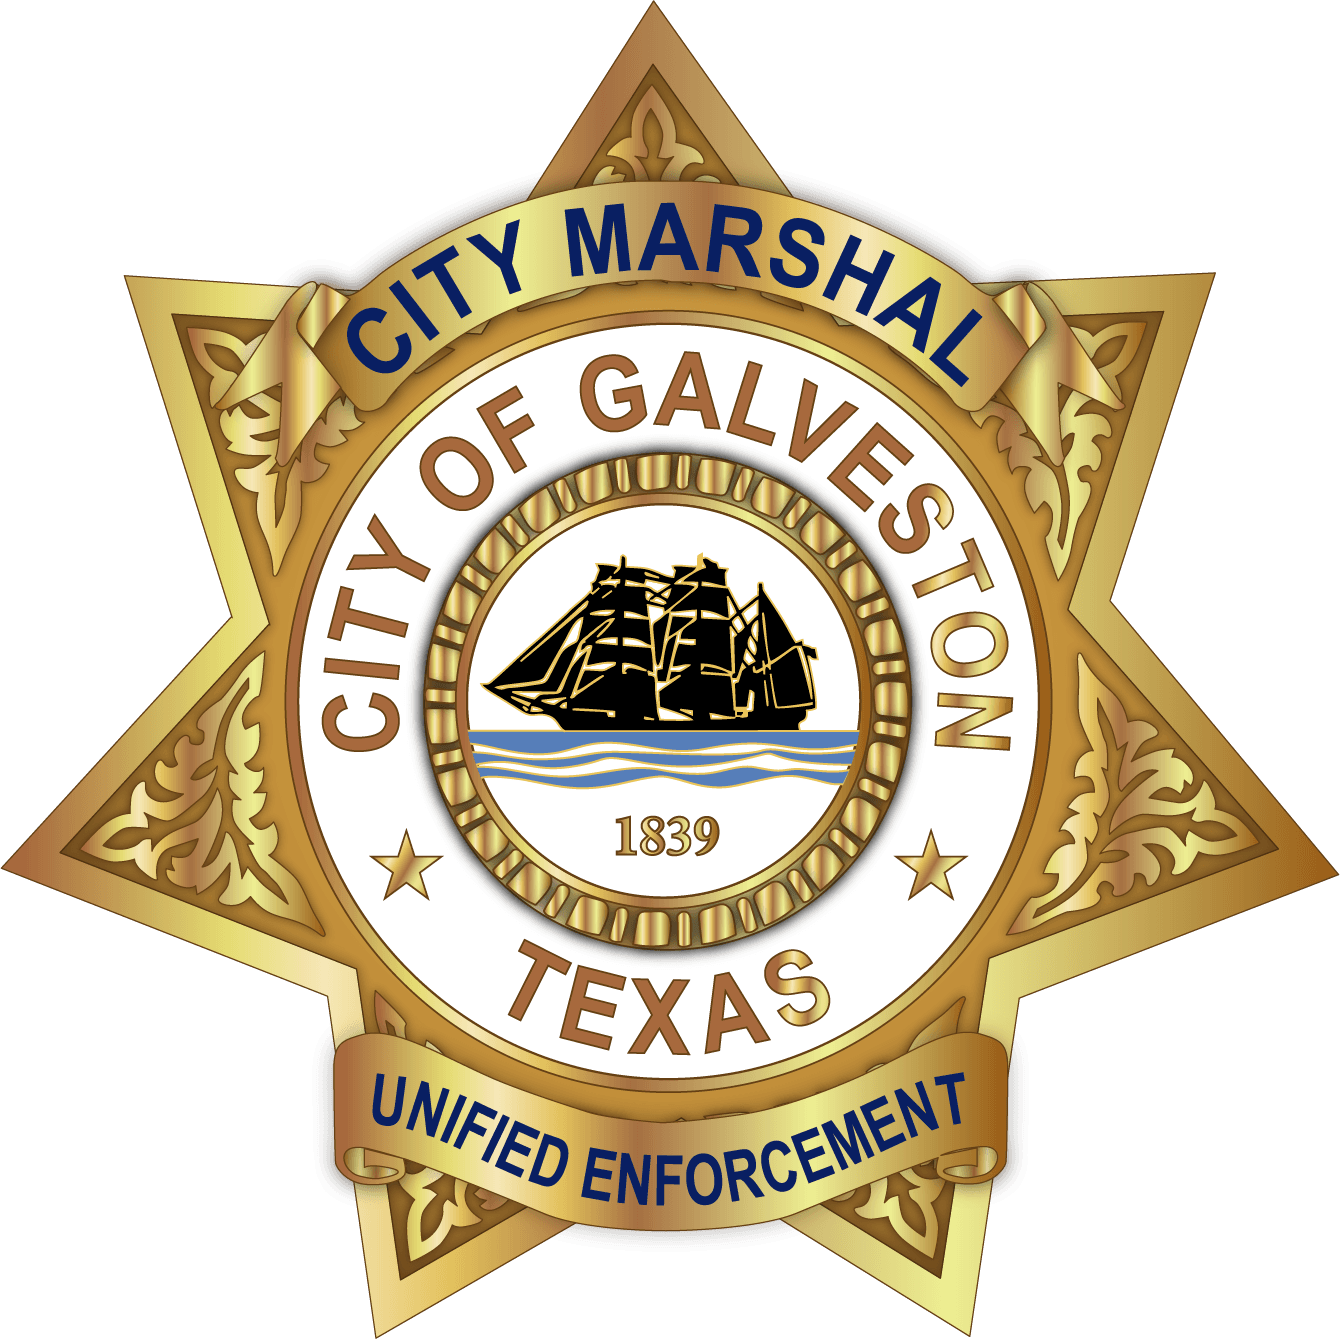 C-130823 Galveston City Marshals-Badge 2 TX Texas AR